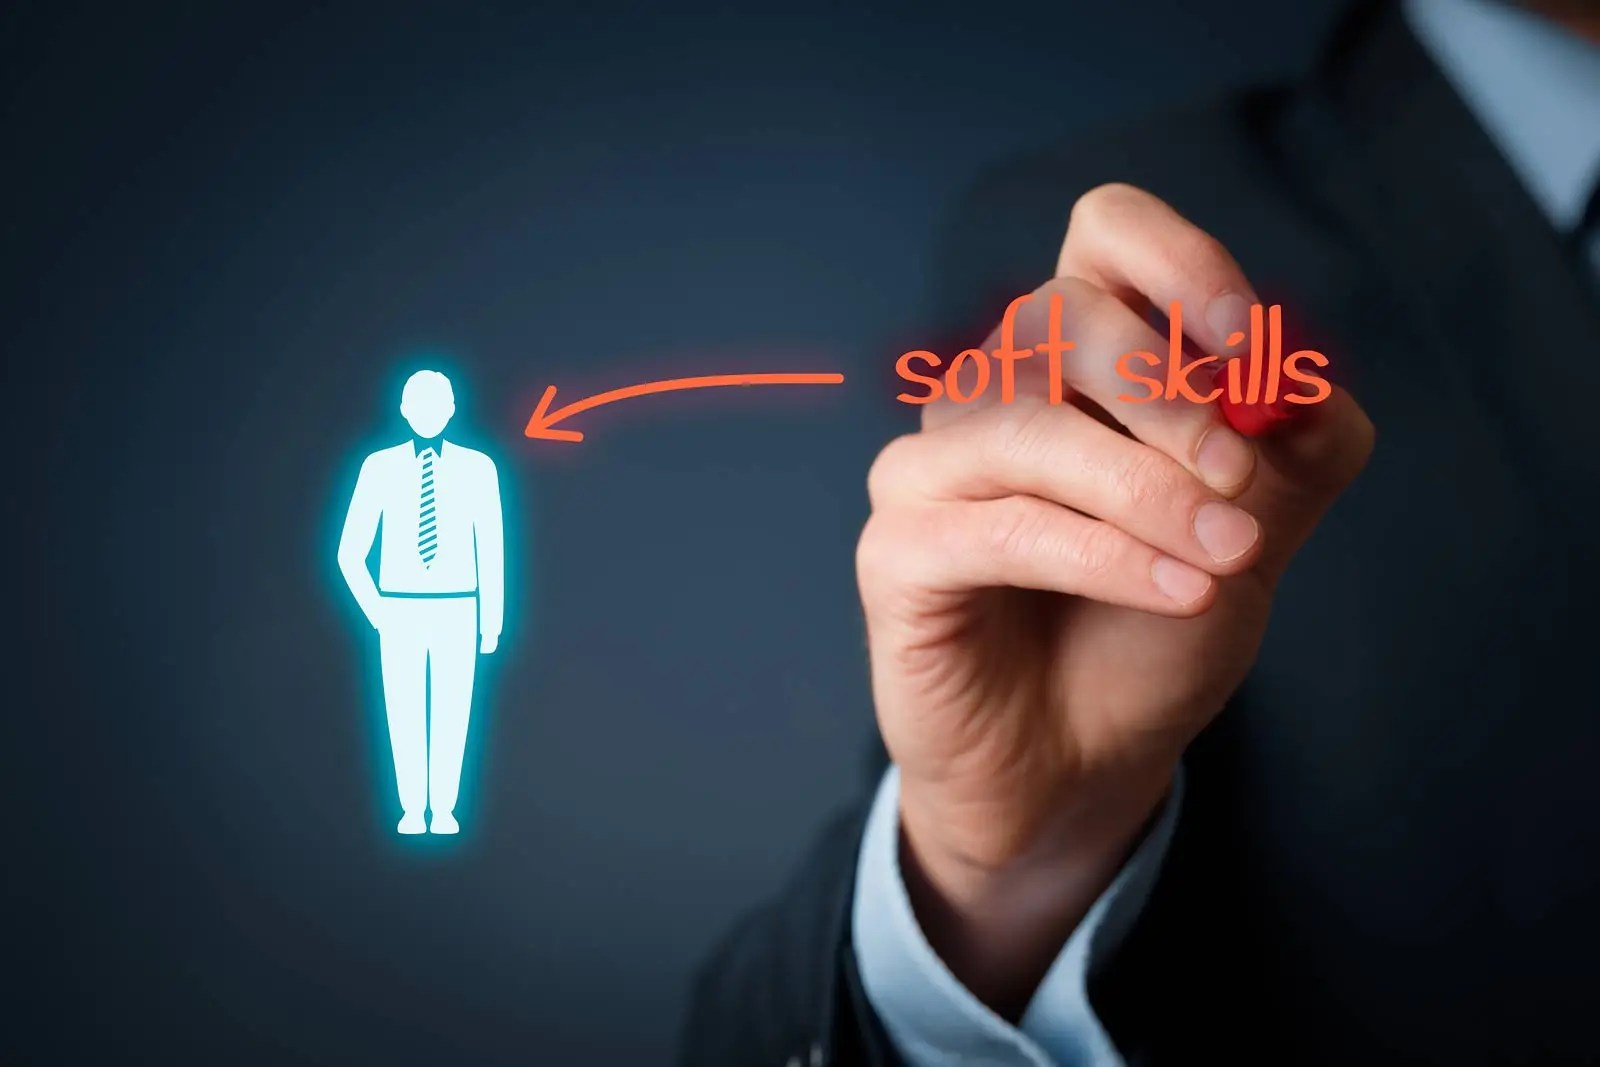 How To Ensure Your Candidate Has Soft Skills Before Hiring